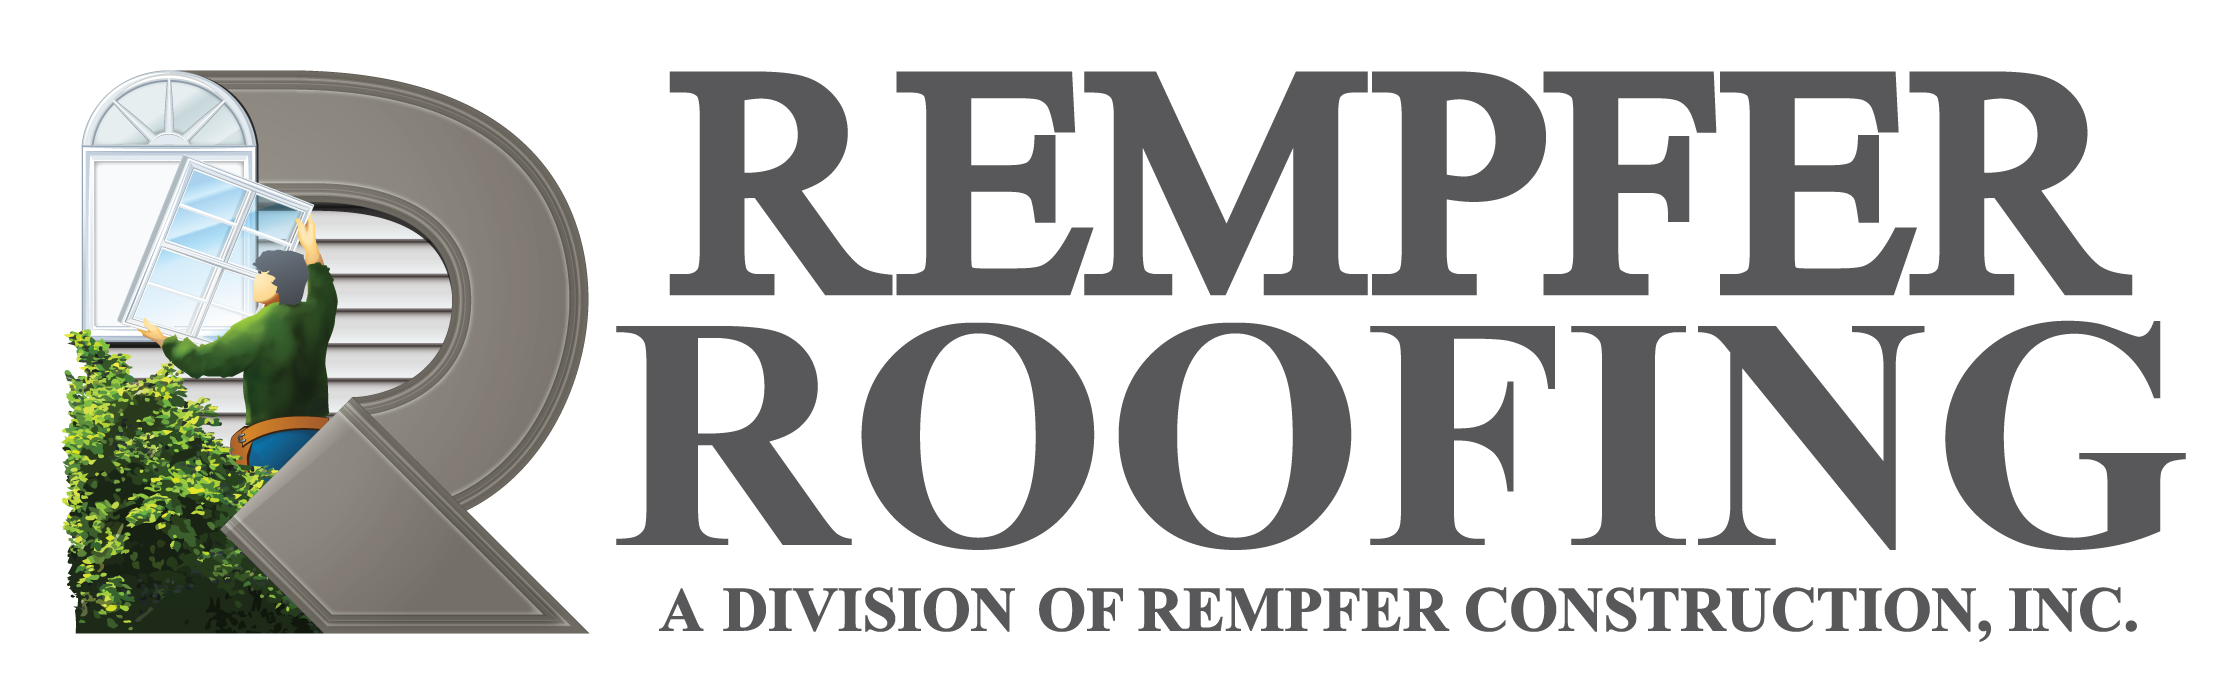 RempferRoof